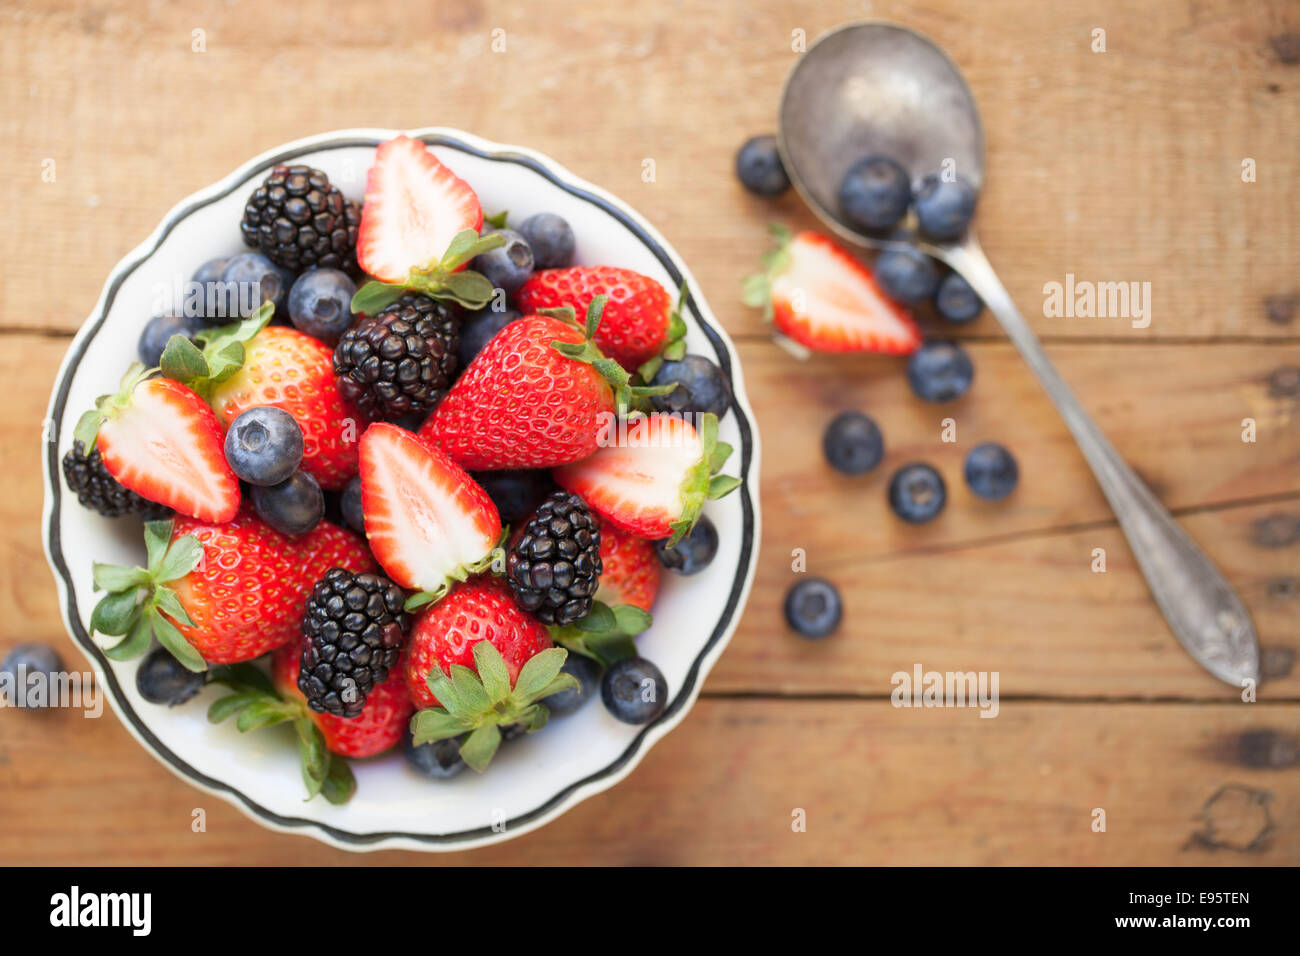 A bowl of mixed berries on a rough wooden table top. - Stock Image